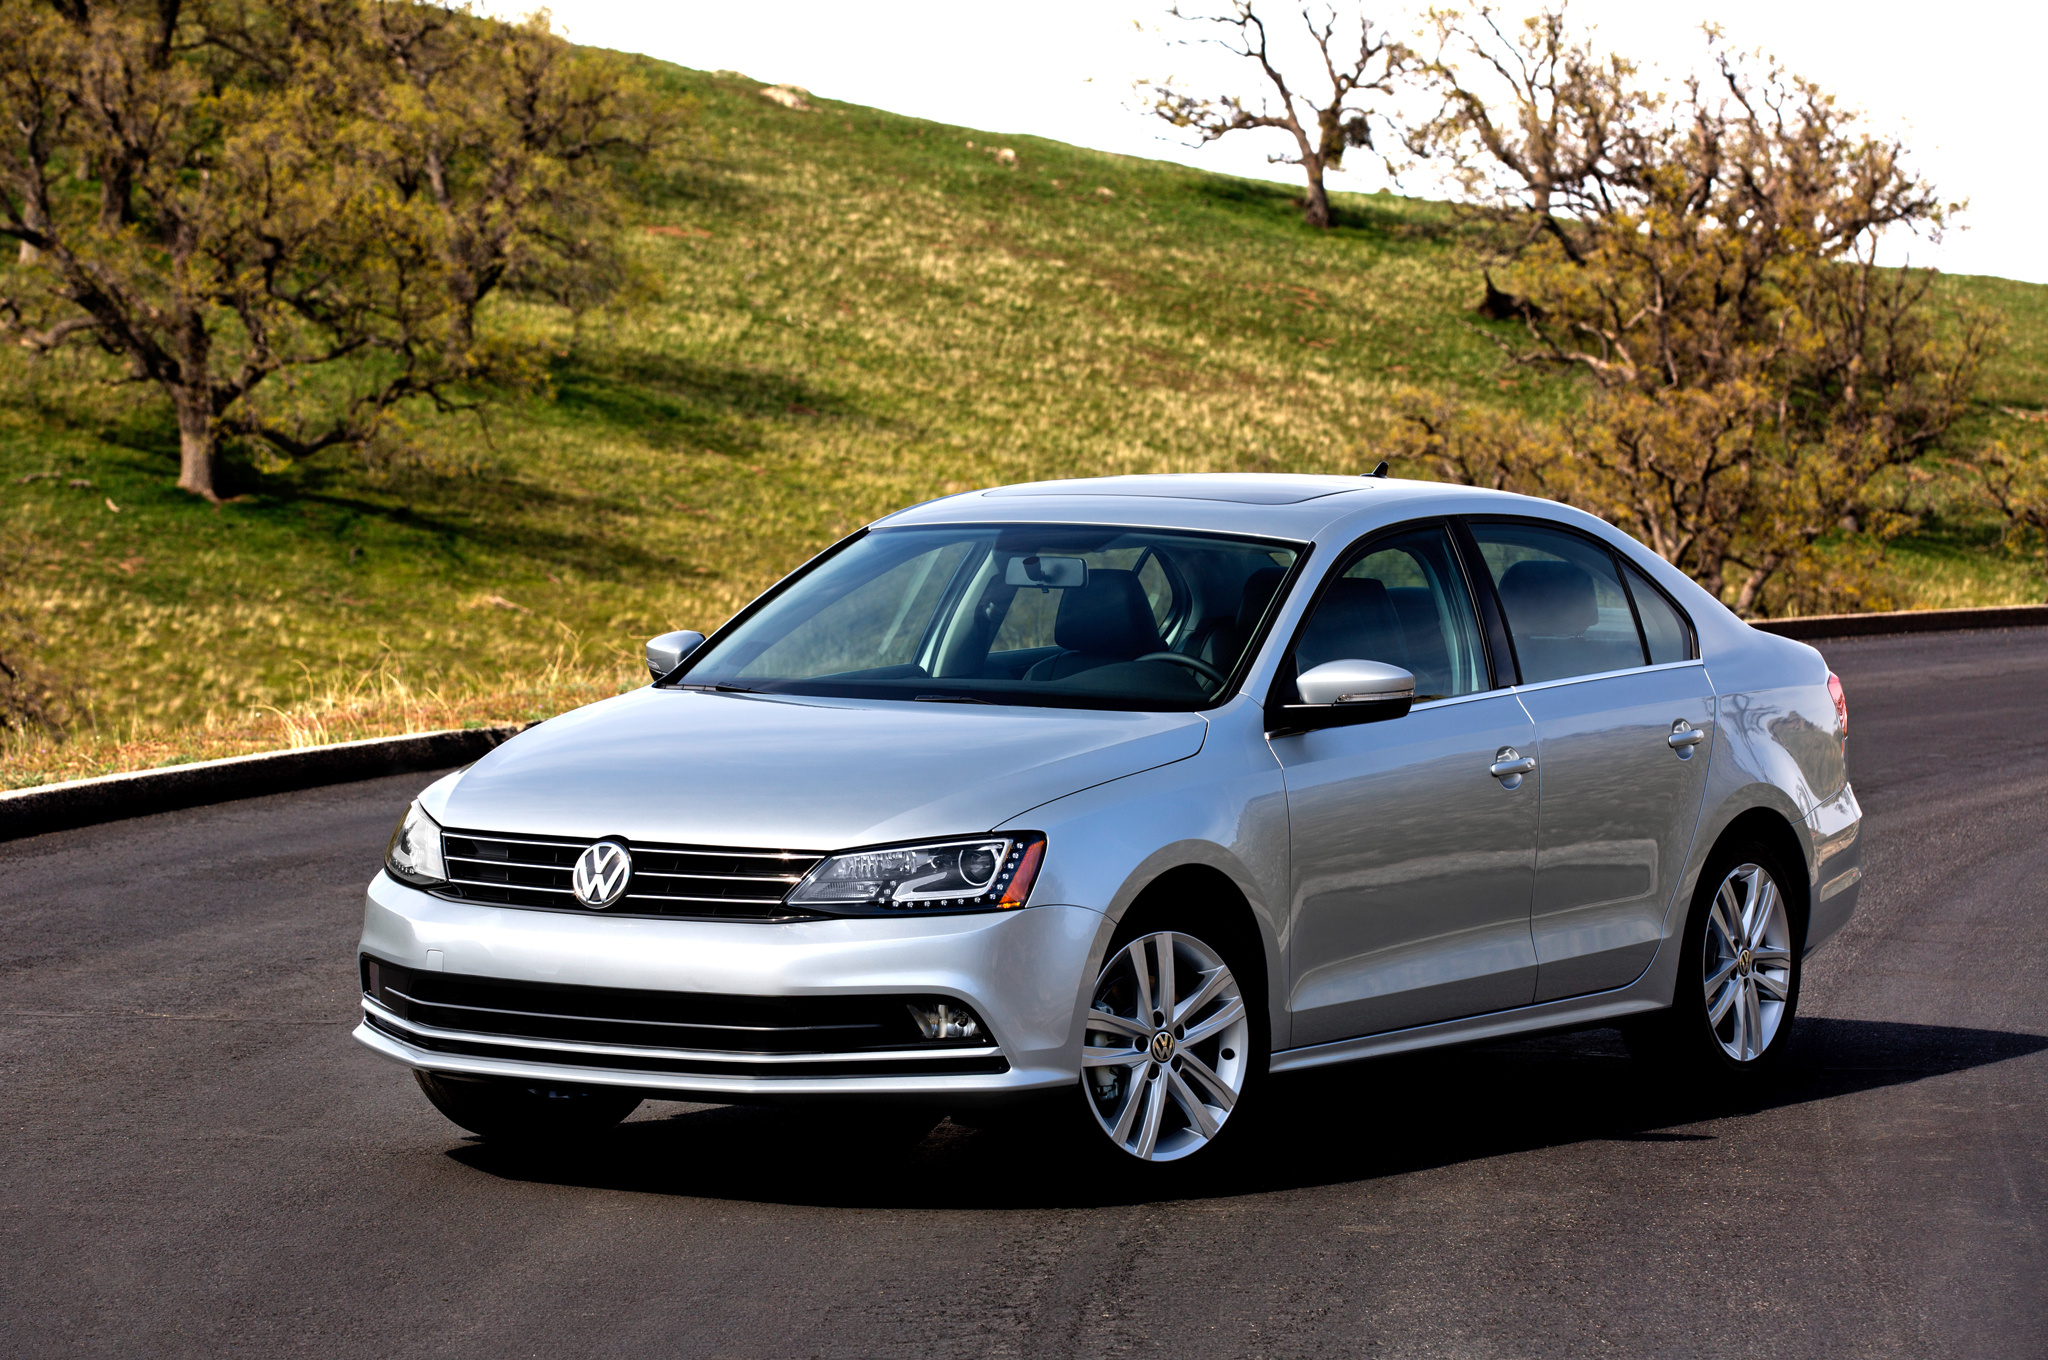 volkswagen jetta 2015 price in uae